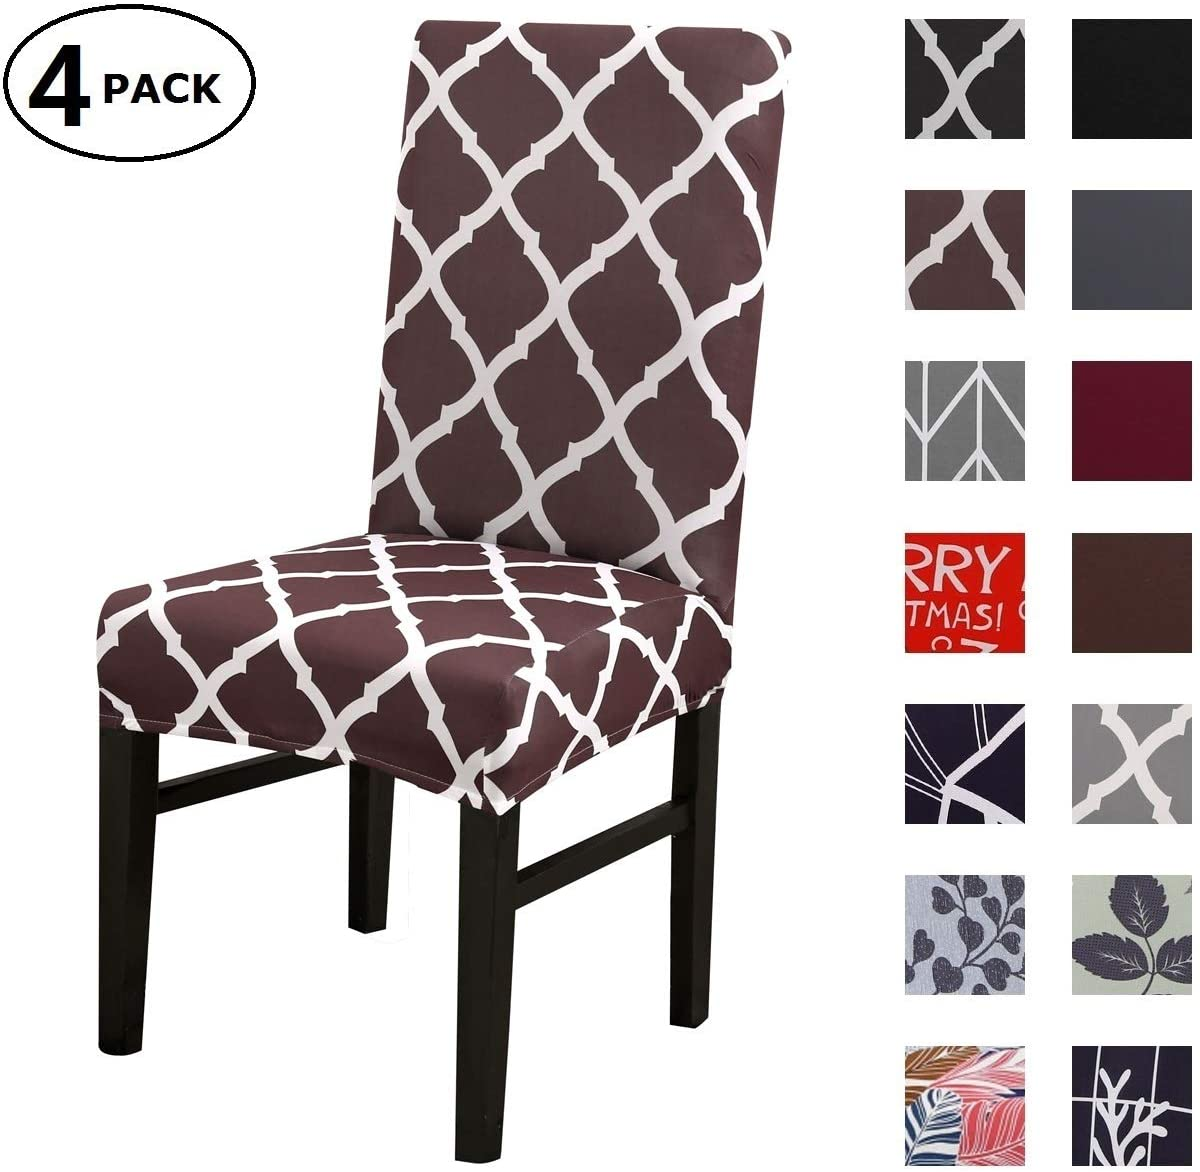 Dining Chair Cover Seat Protector Super Fit Slipcover Stretch Removable Washable Soft Spandex Fabric for Home Hotel Dining Room Ceremony Banquet Wedding Party Restaurant (Color 12, 4 Per Set)